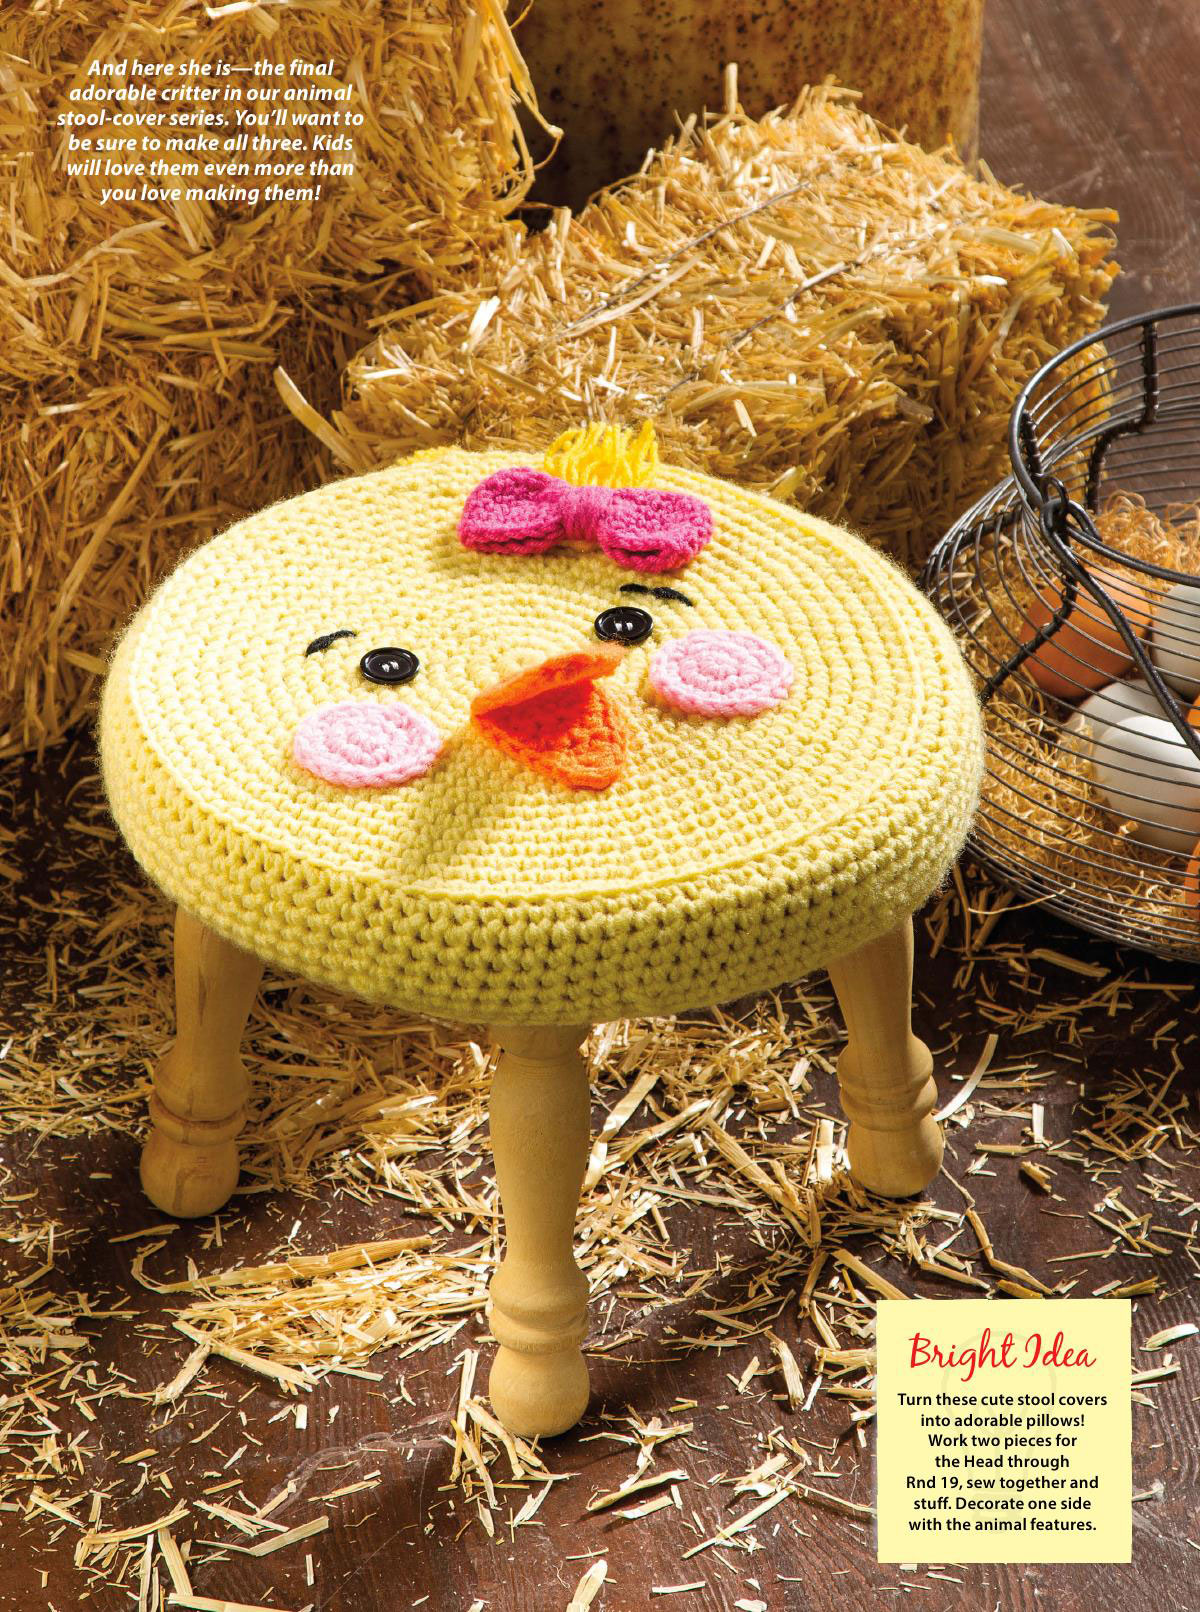 Farm Animal Stools Crochet Cover ⋆ Crochet Kingdom